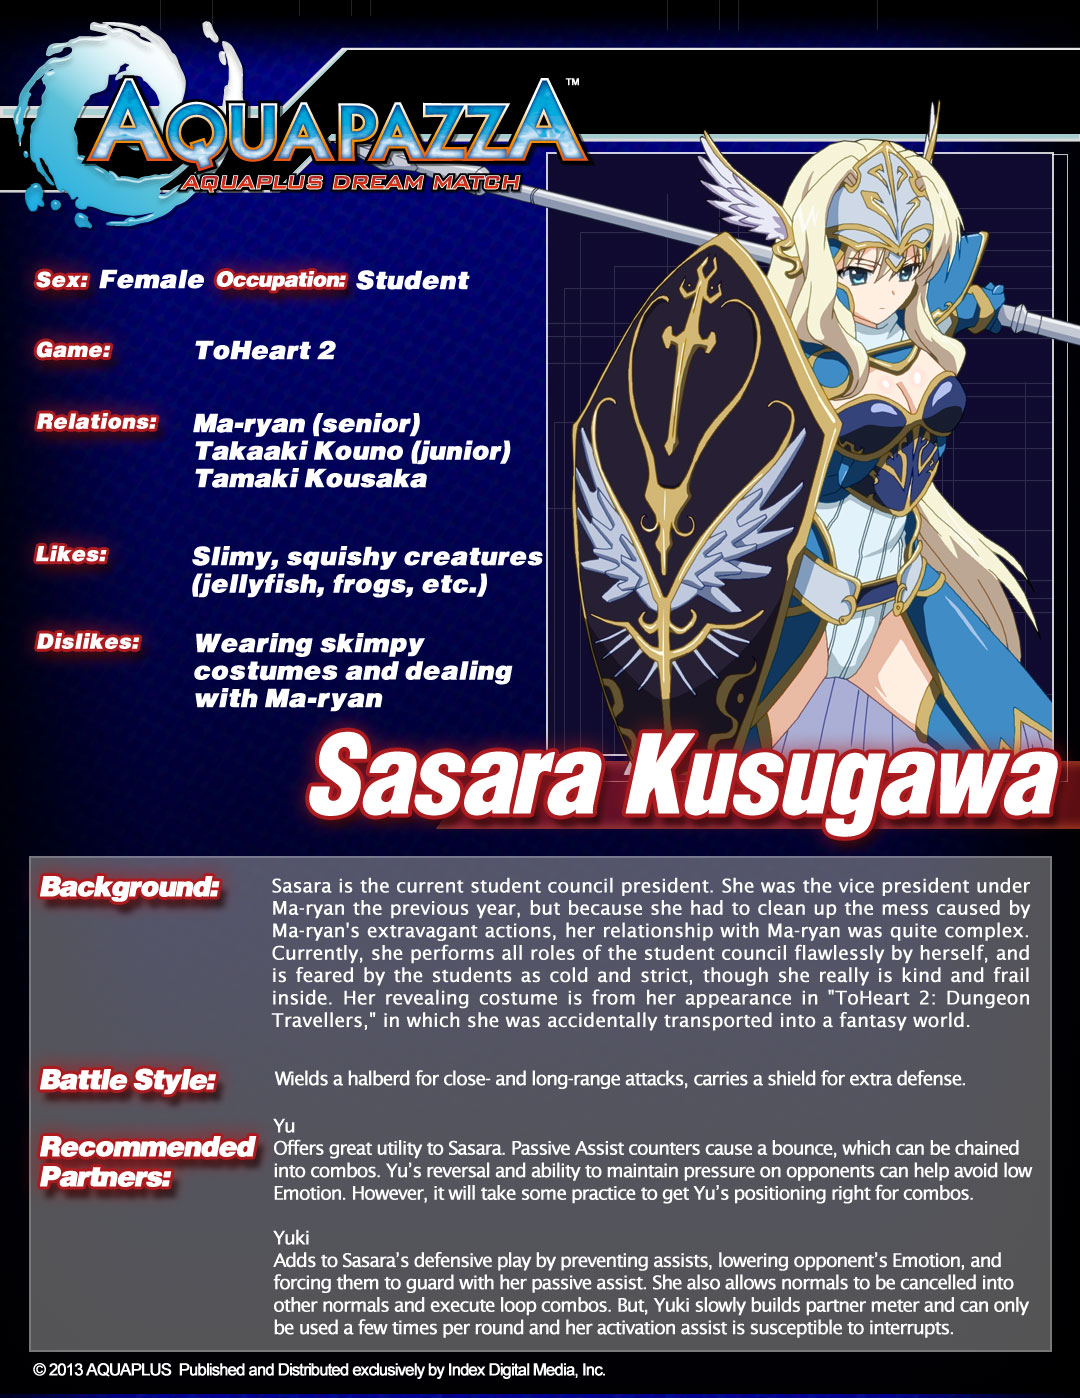 Aquapazza-Char-sheet-Sasara